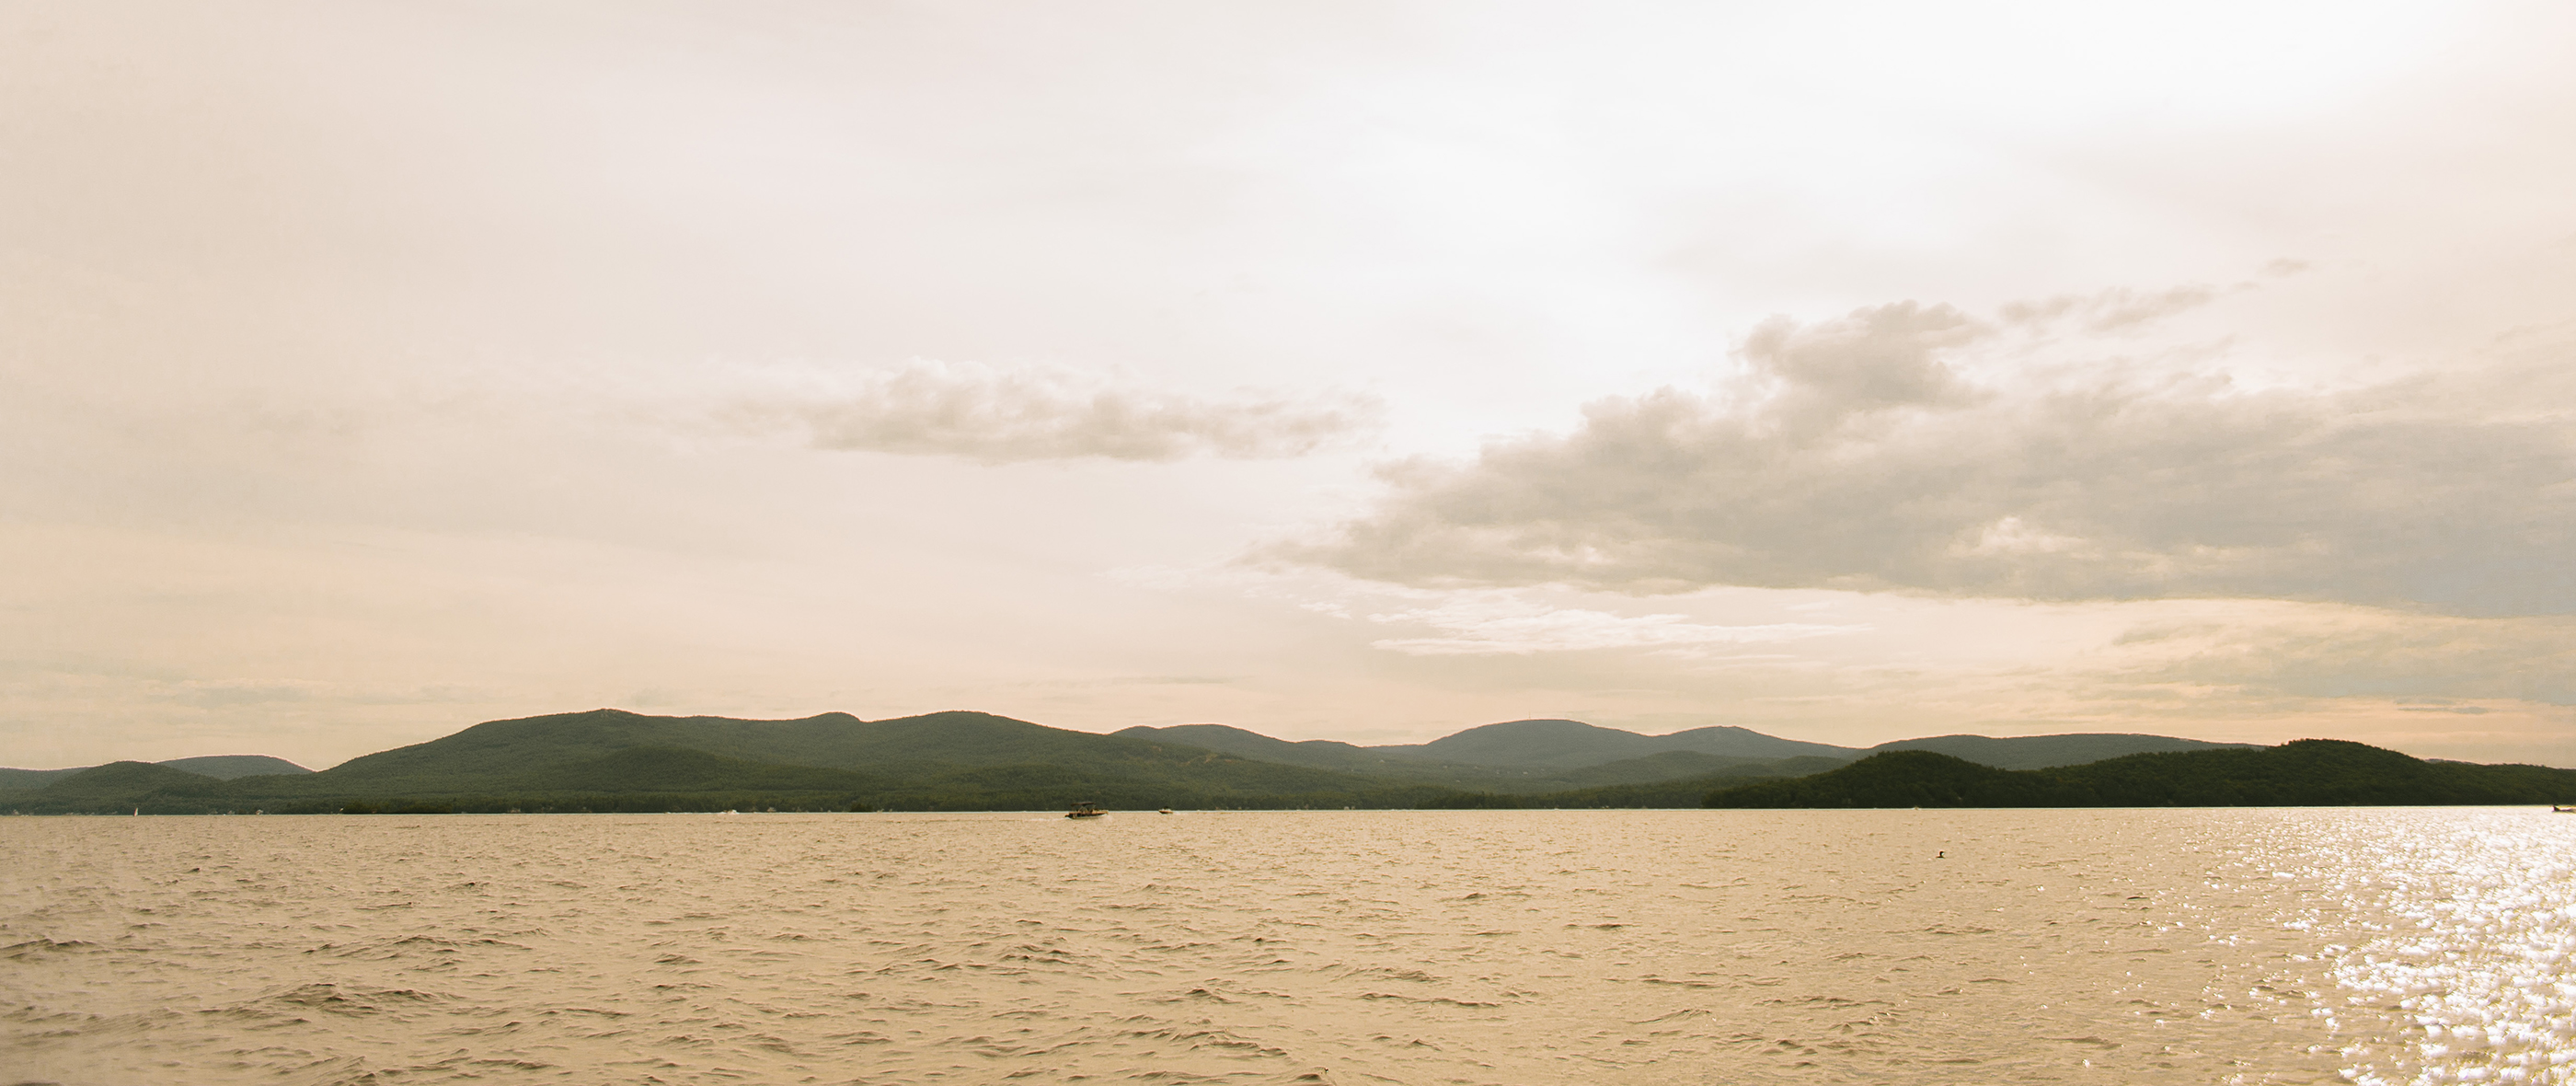 LIZ + TOM | LAKE WINNIPESAUKEE ENGAGEMENT